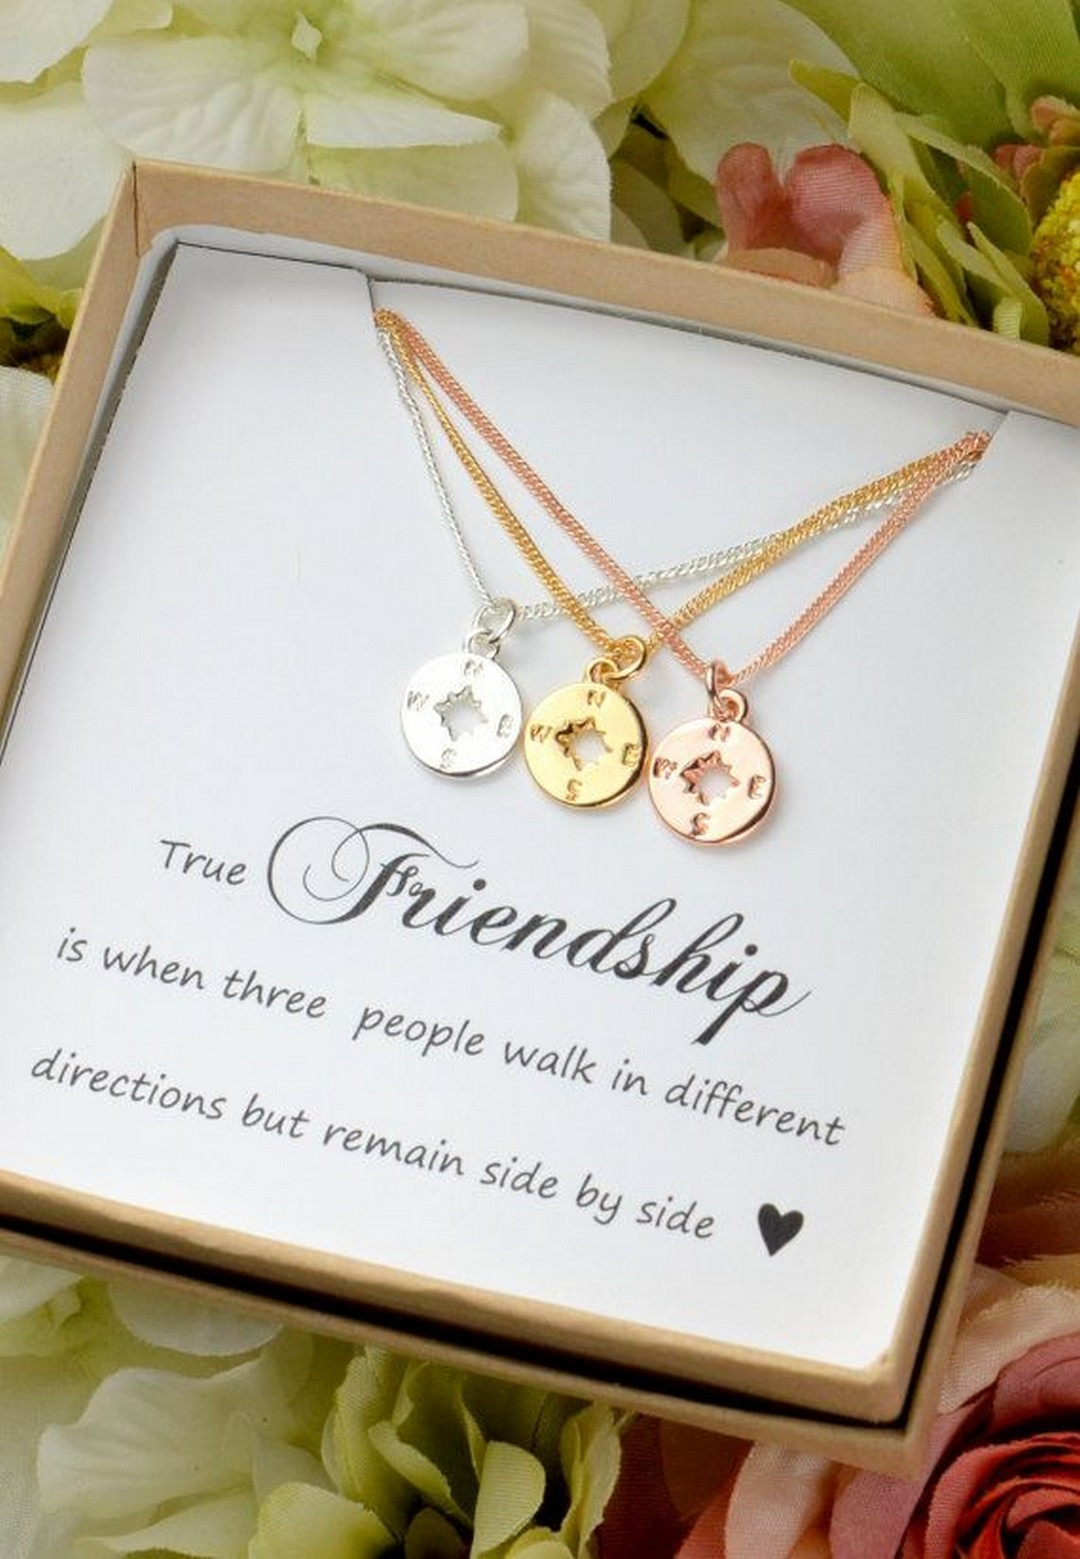 Best ideas about Gift Ideas Friends . Save or Pin Beautiful And Fun Best Friend Gifts Ideas 9 echitecture Now.